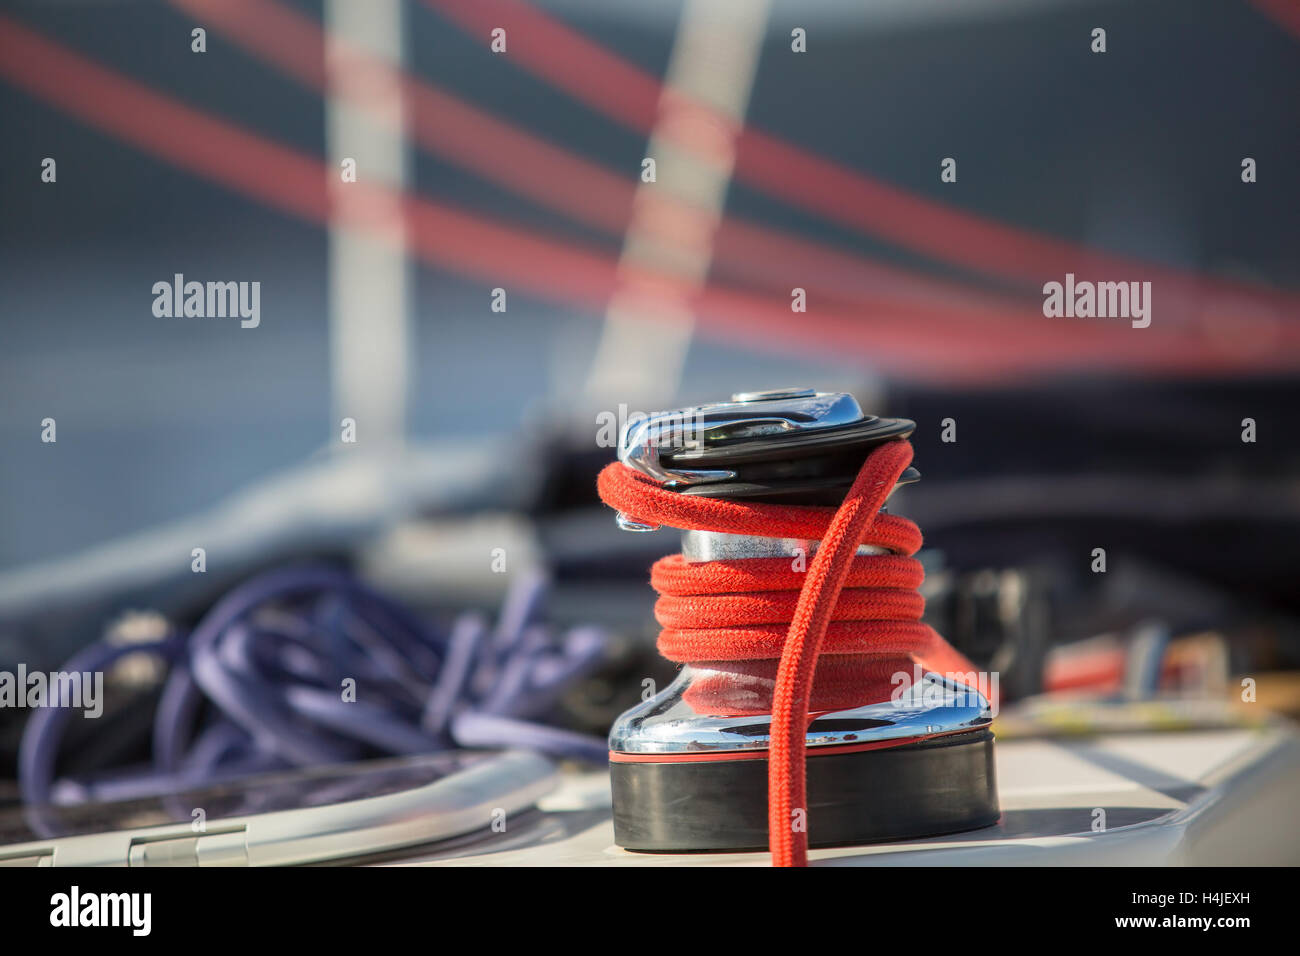 Sailboat winch and rope yacht detail. Yachting on the Sea. - Stock Image